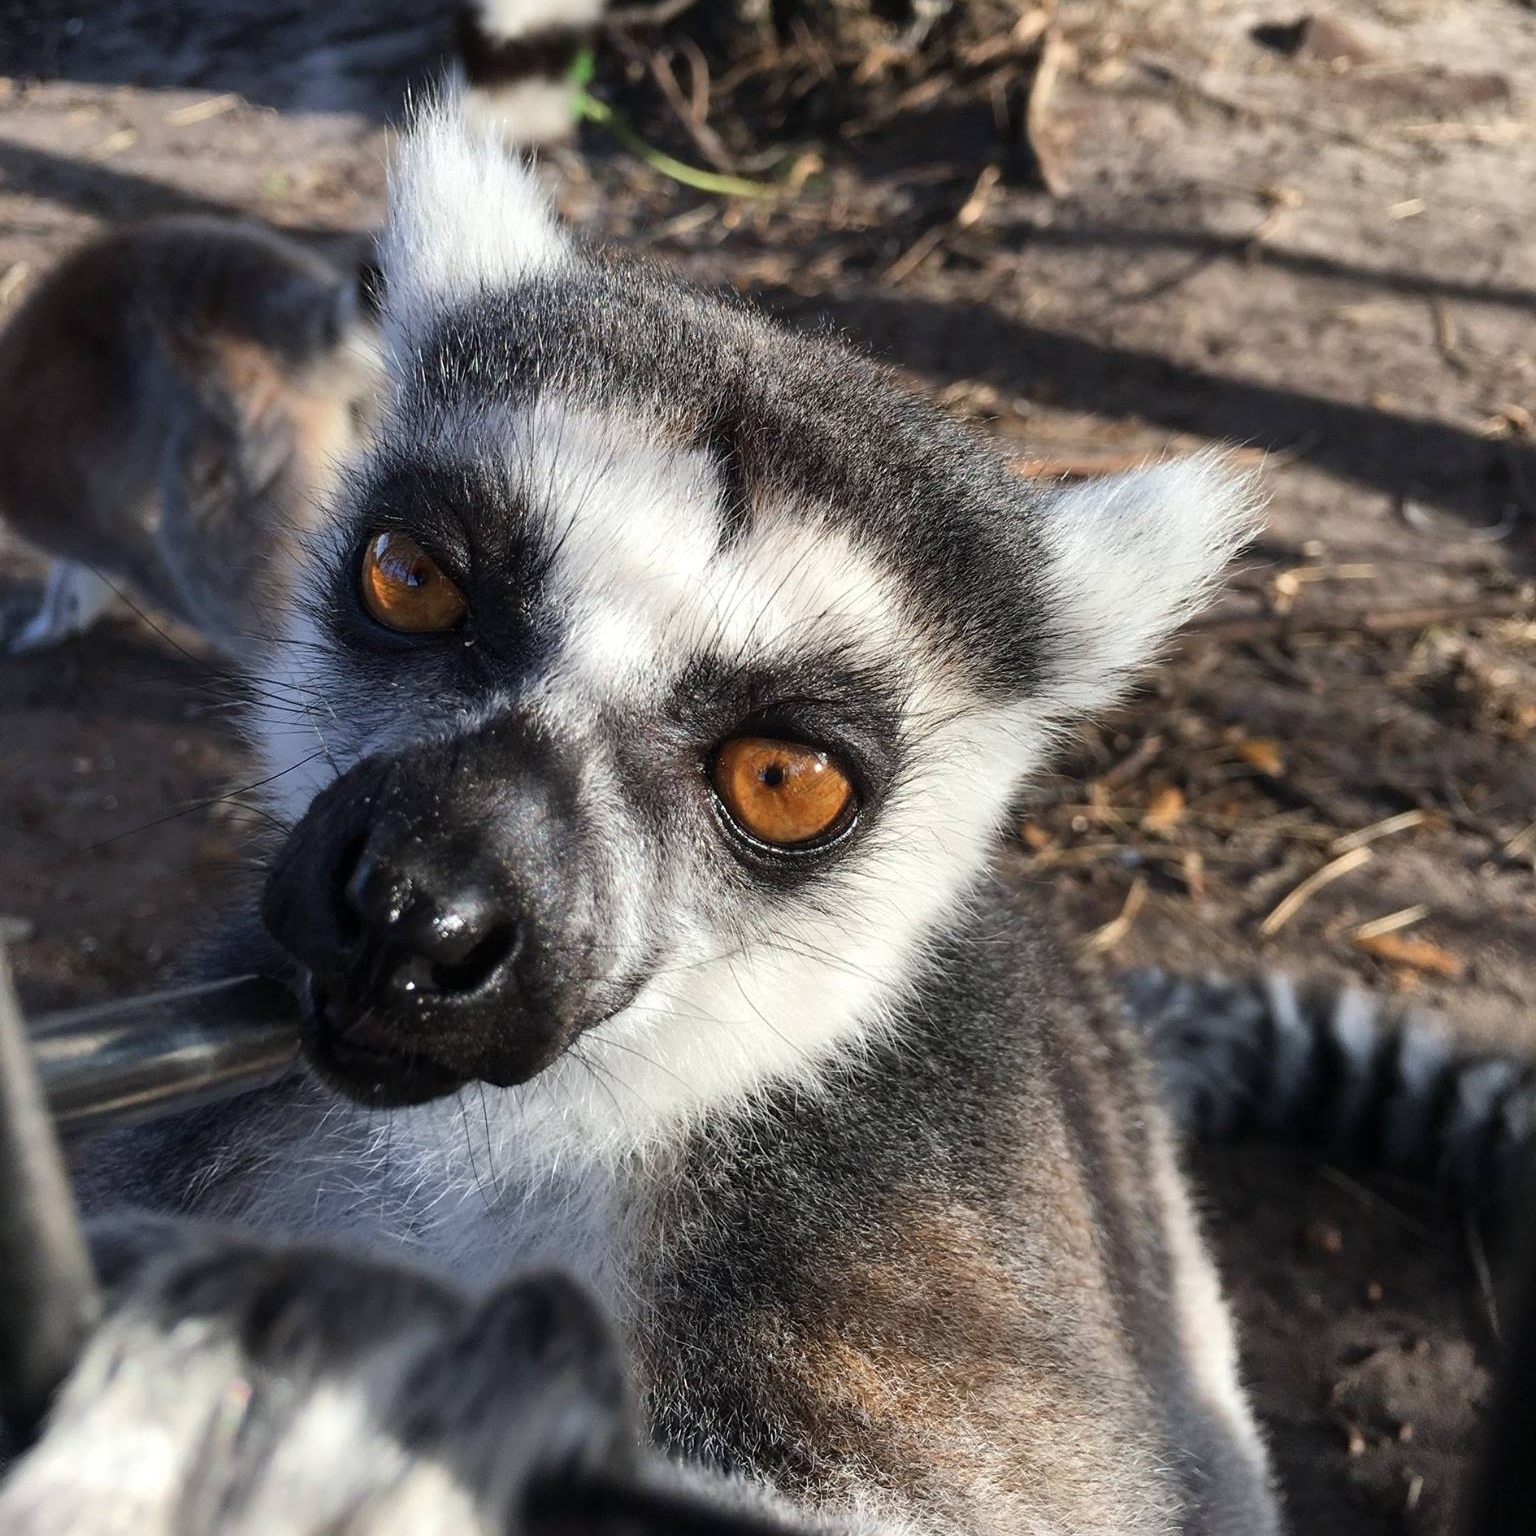 Peanut the Ring-Tailed Lemur saying see you later at Obloy Family Ranch in Merritt Island, Florida.